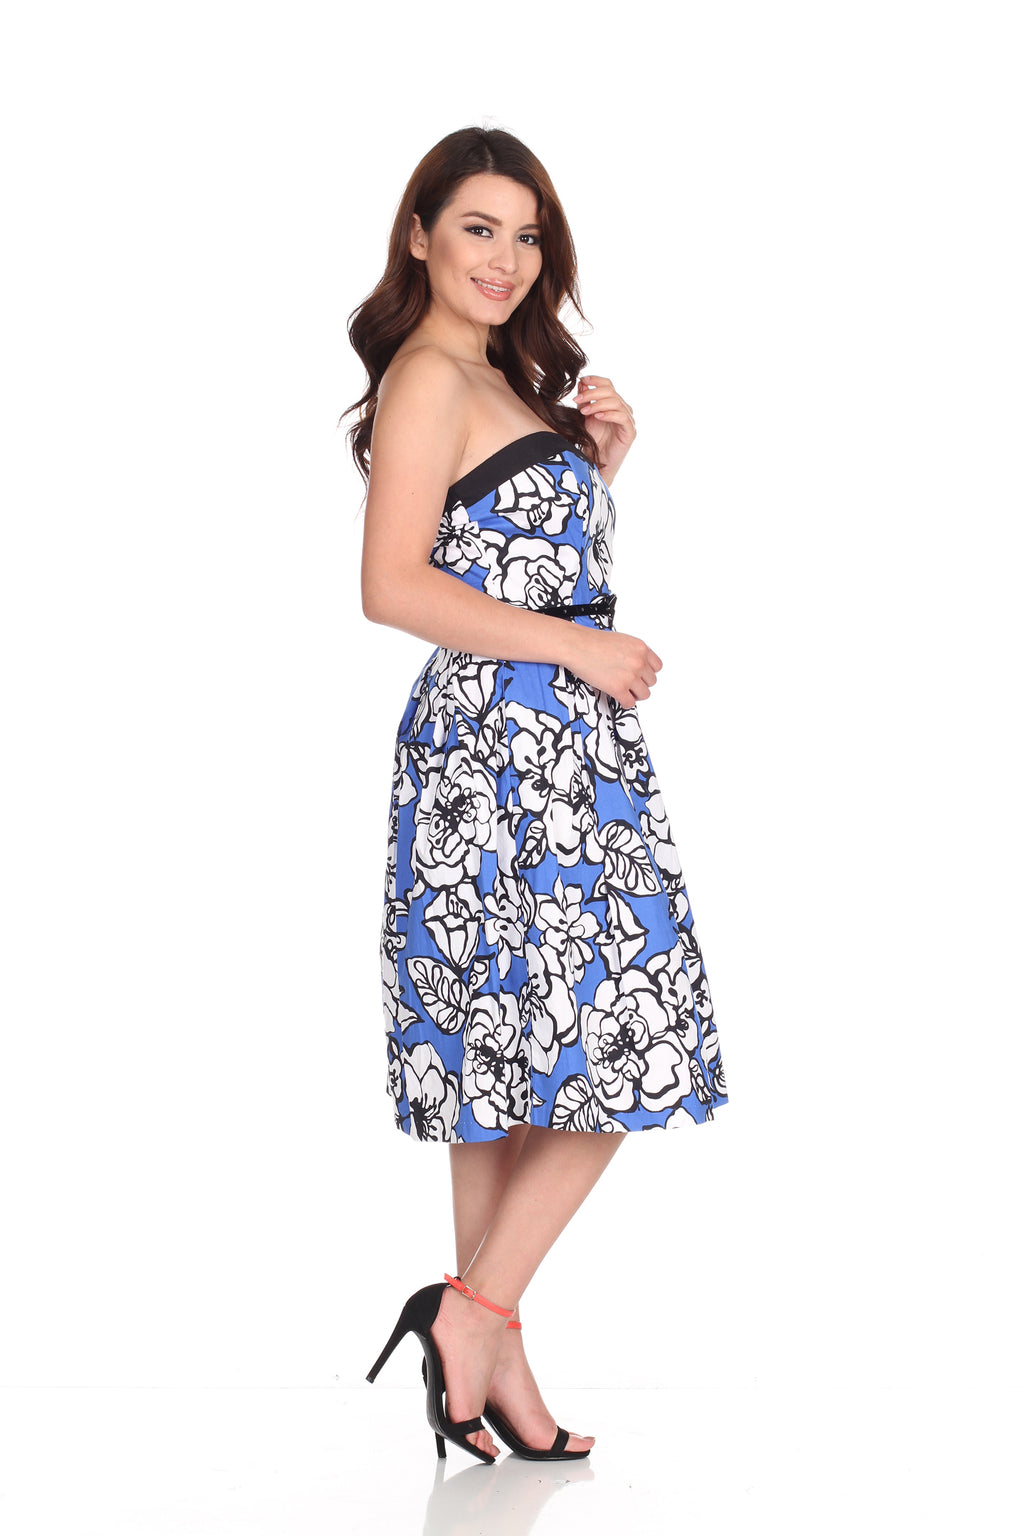 Blue Floral Dress Tube